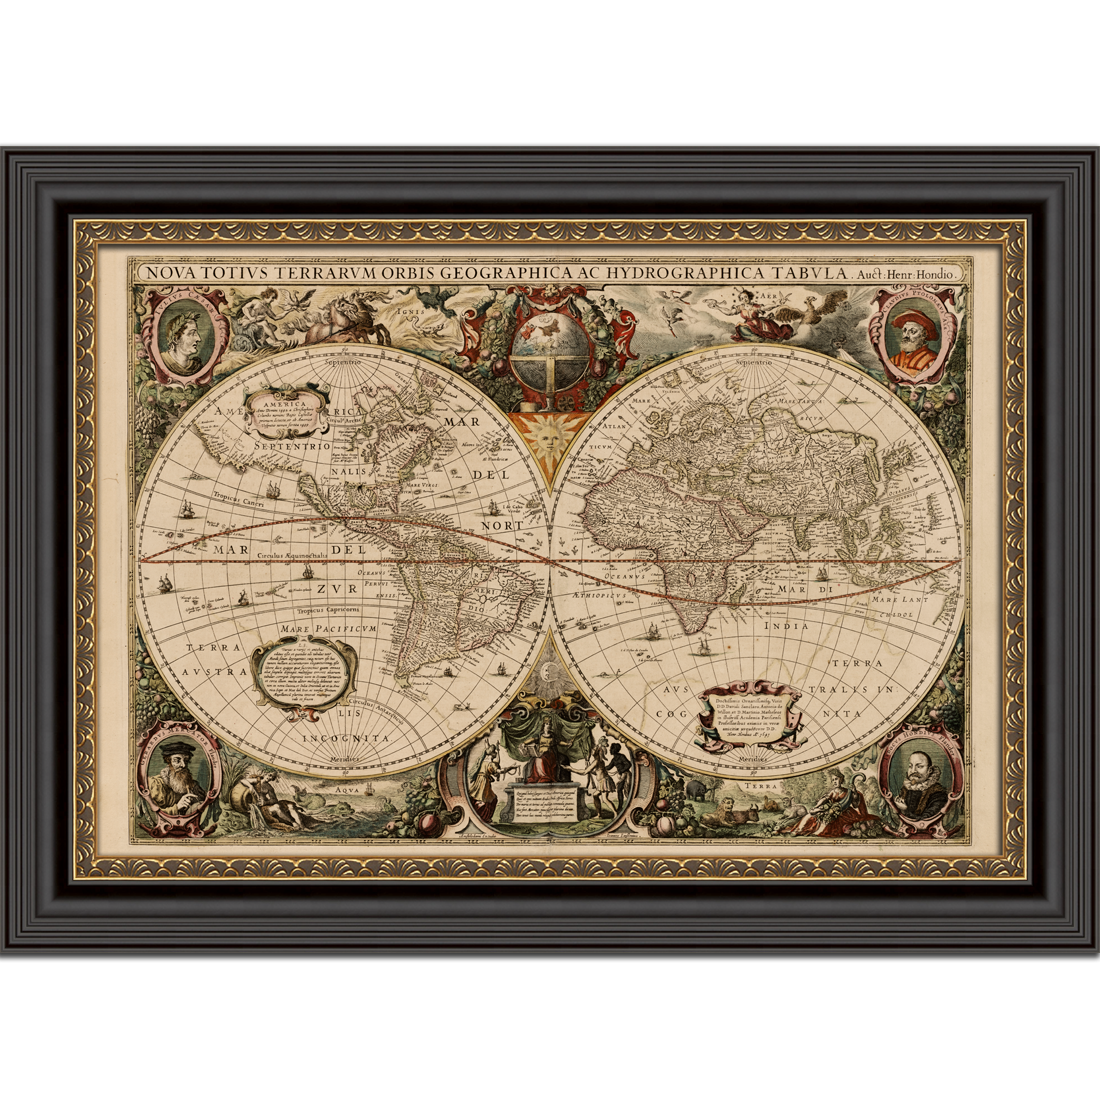 World map nova totius 1641 framed great minds art historic nova totivs 1641 gumiabroncs